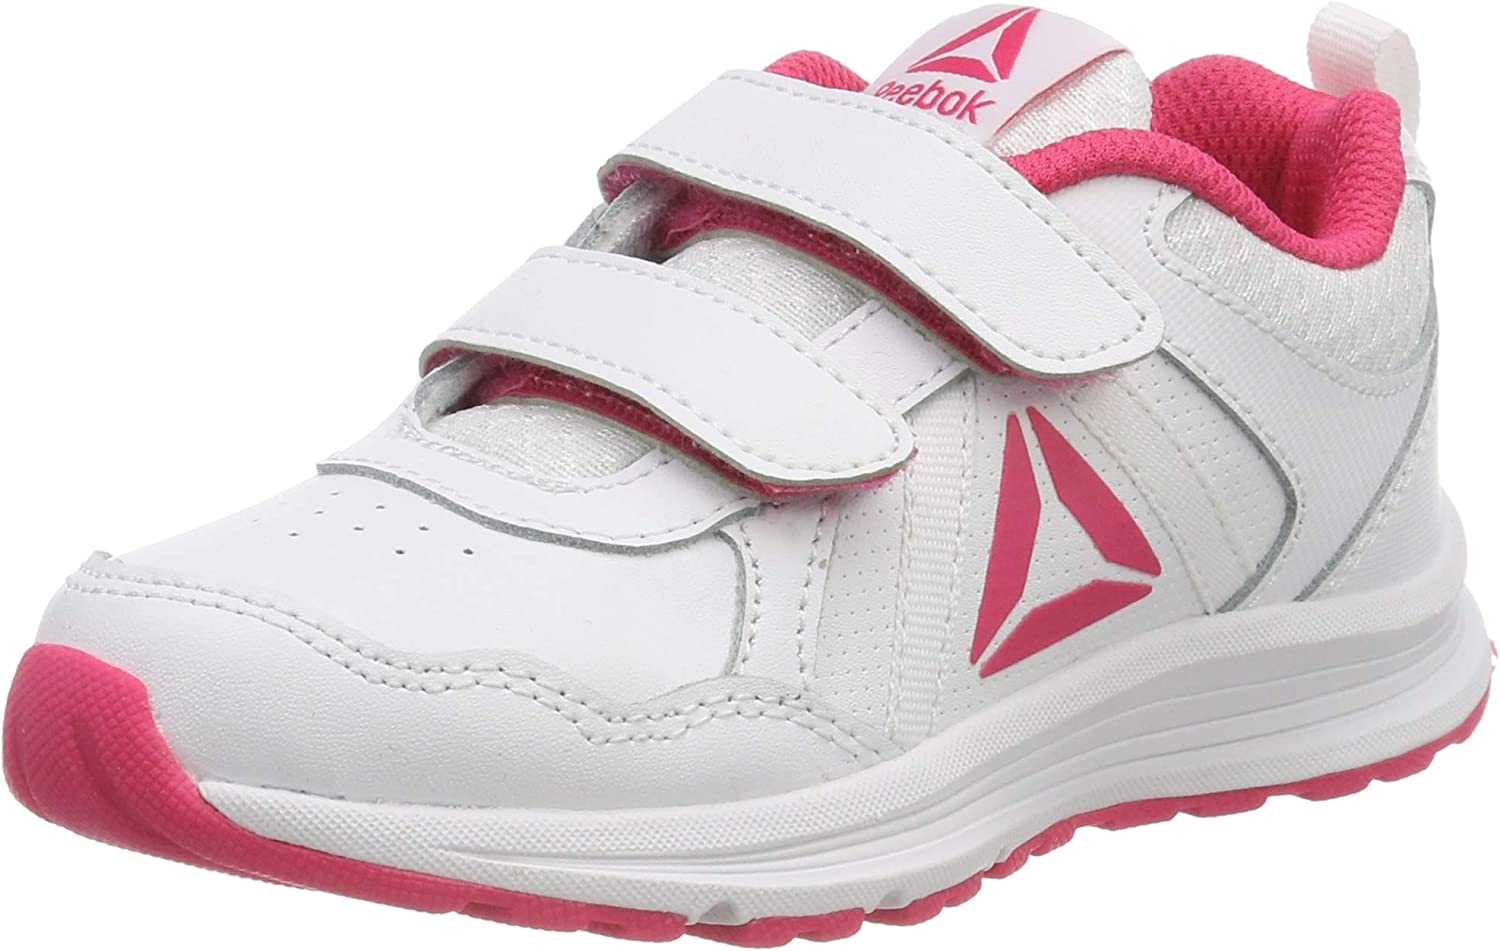 reebok ortholite kids